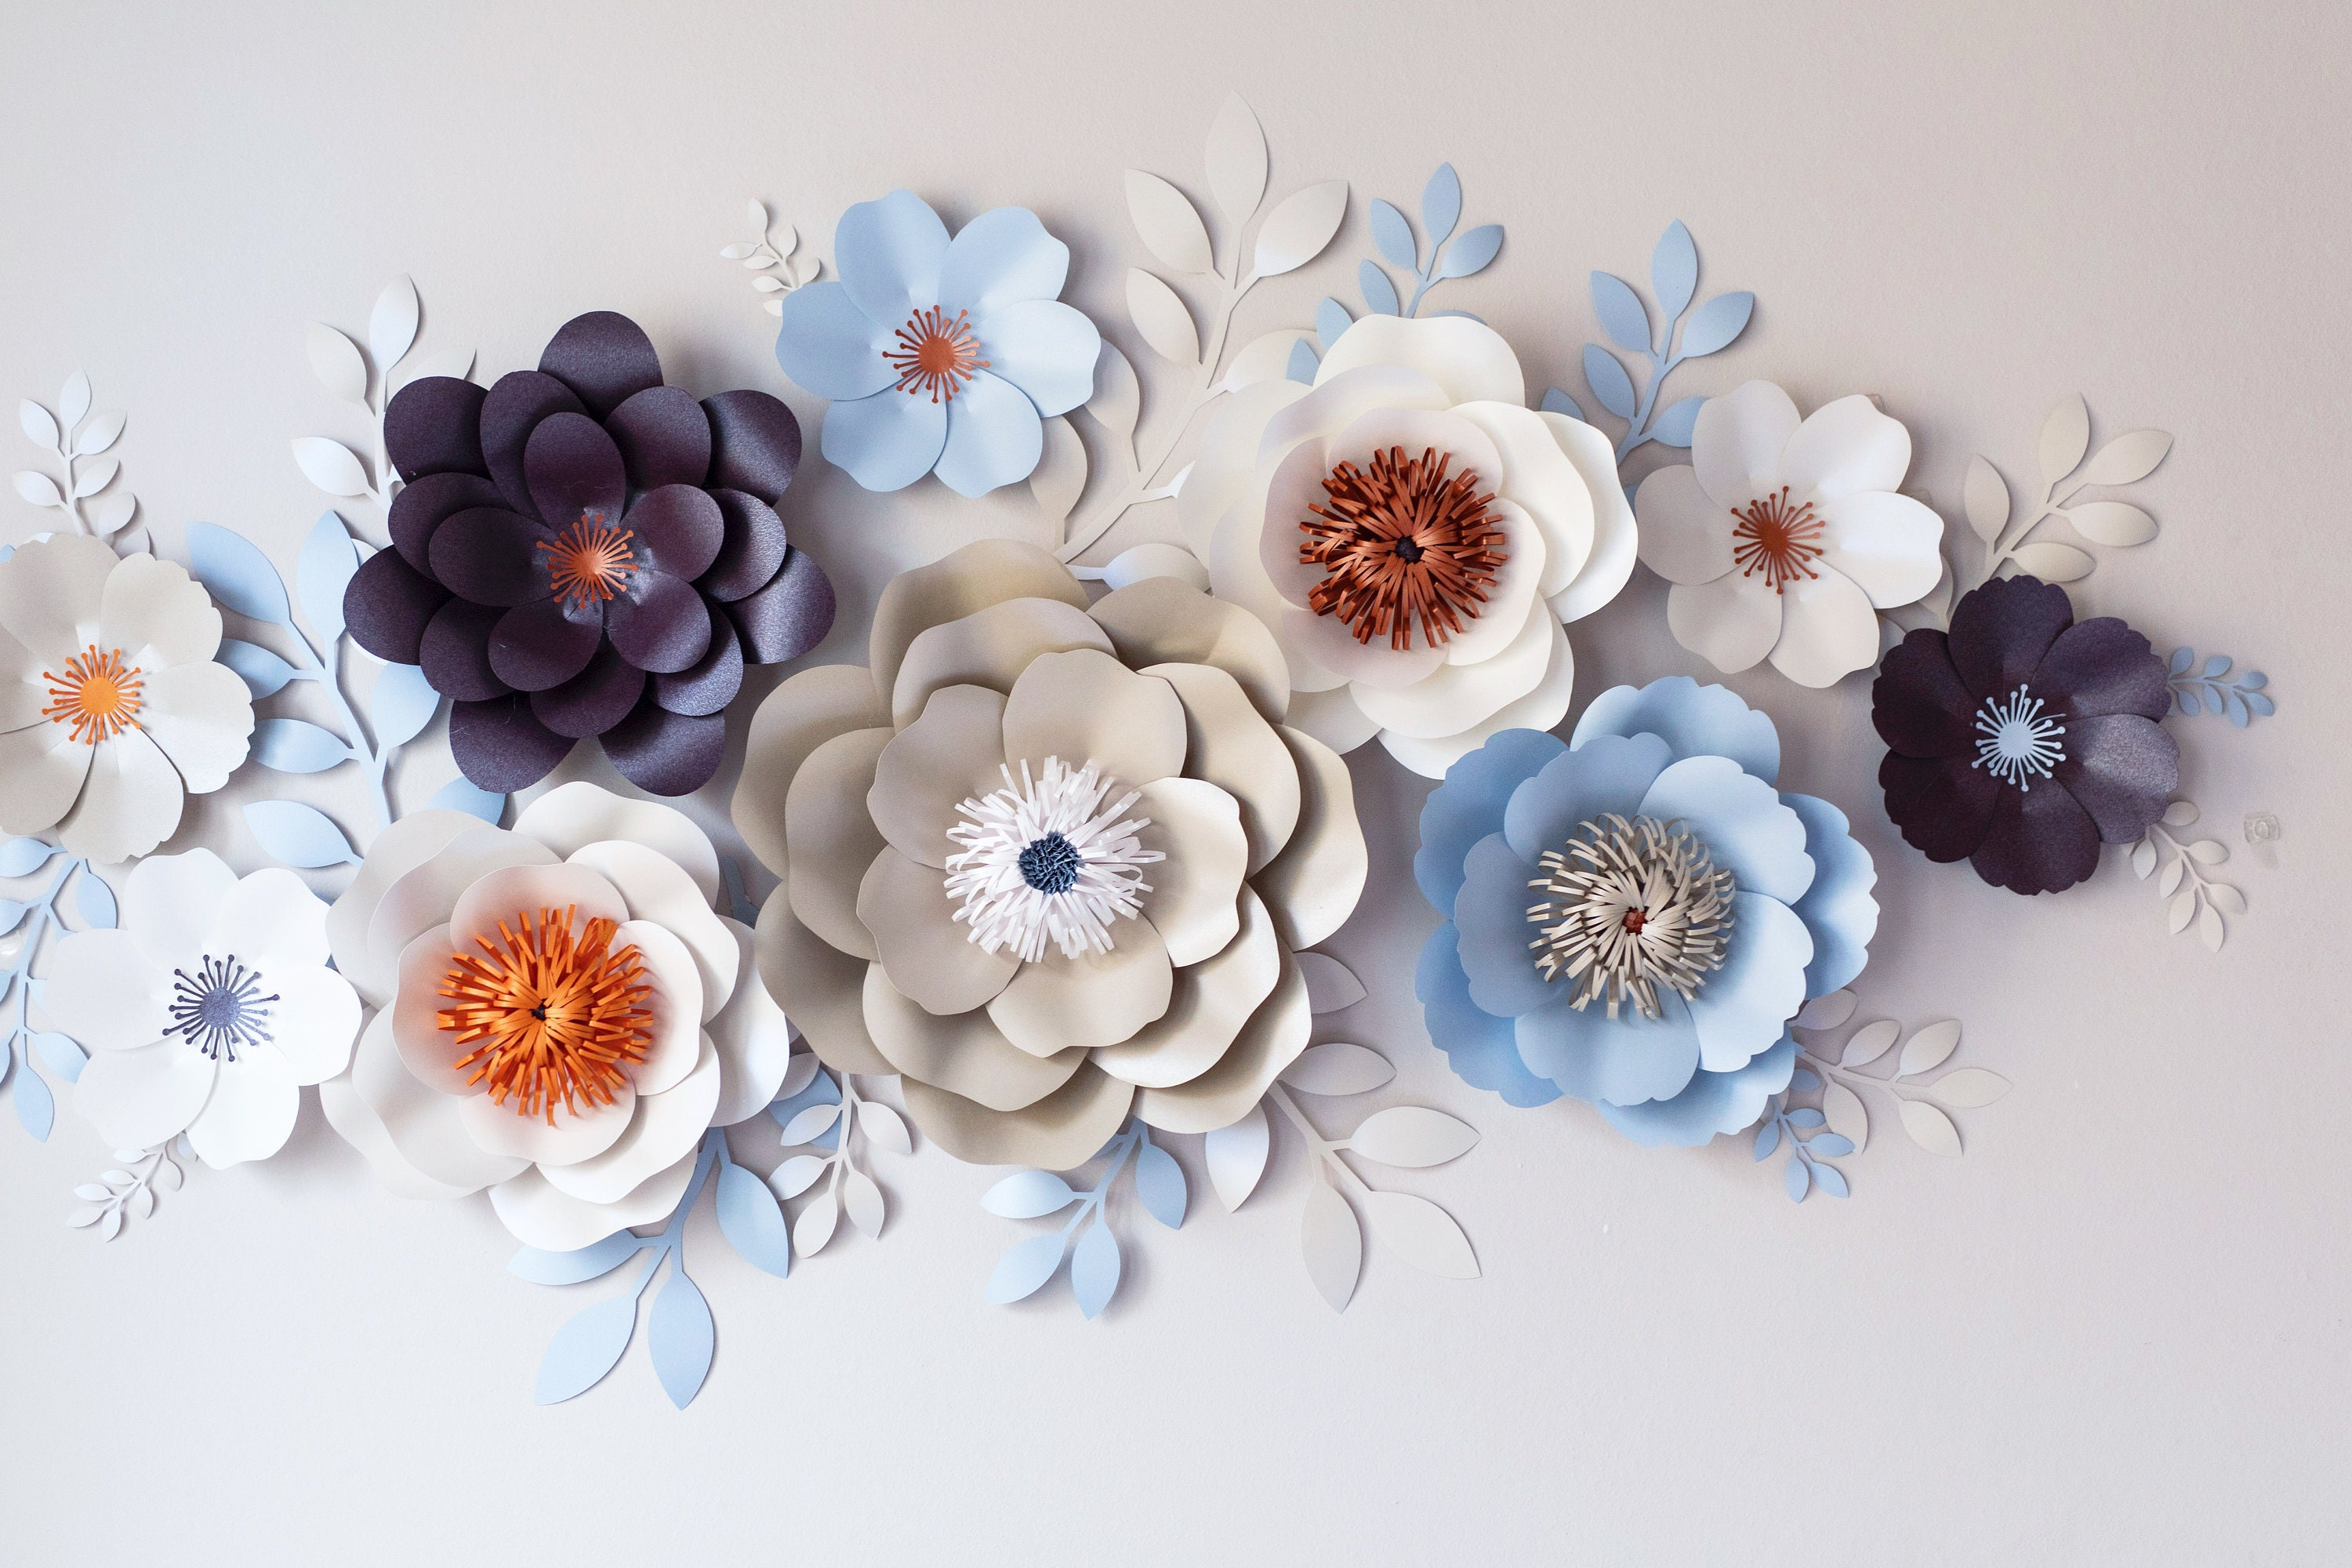 Wall Flowers Video Course Paper Flower Template Paper Etsy